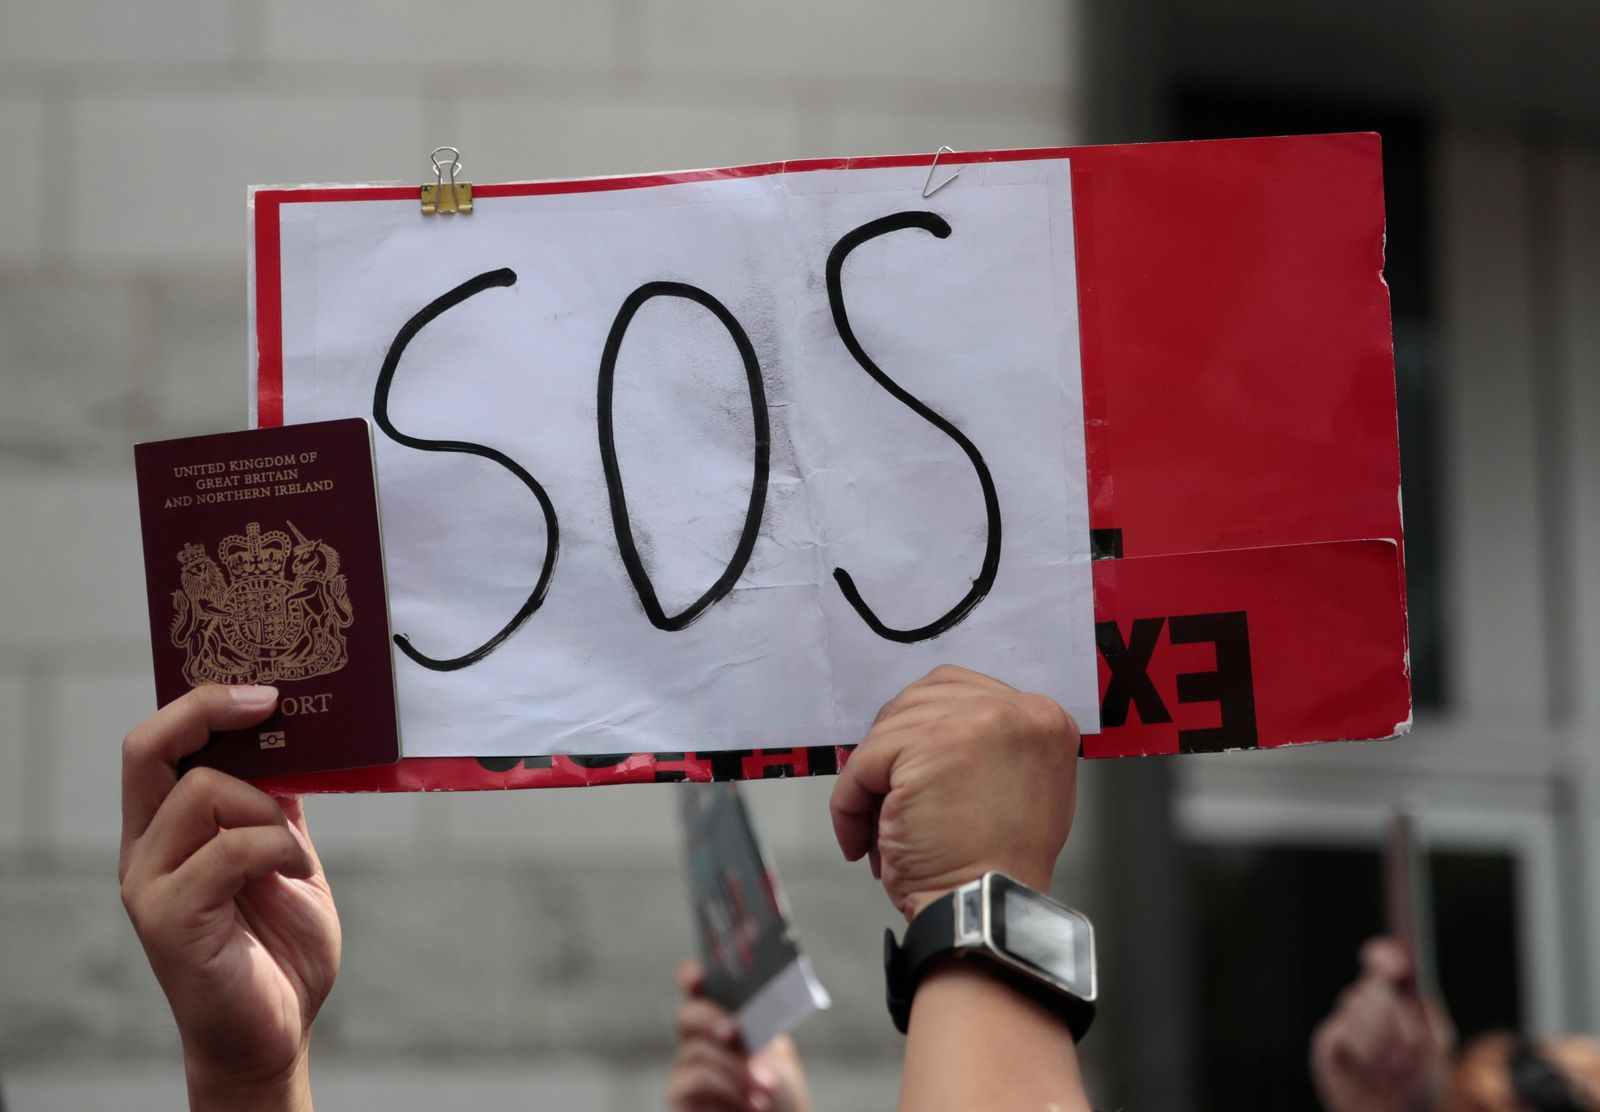 A protestor holds a placard and participates in a peaceful demonstration outside the British Consulate in Hong Kong, Sunday, Sept. 1, 2019. (AP Photo/Jae C. Hong)